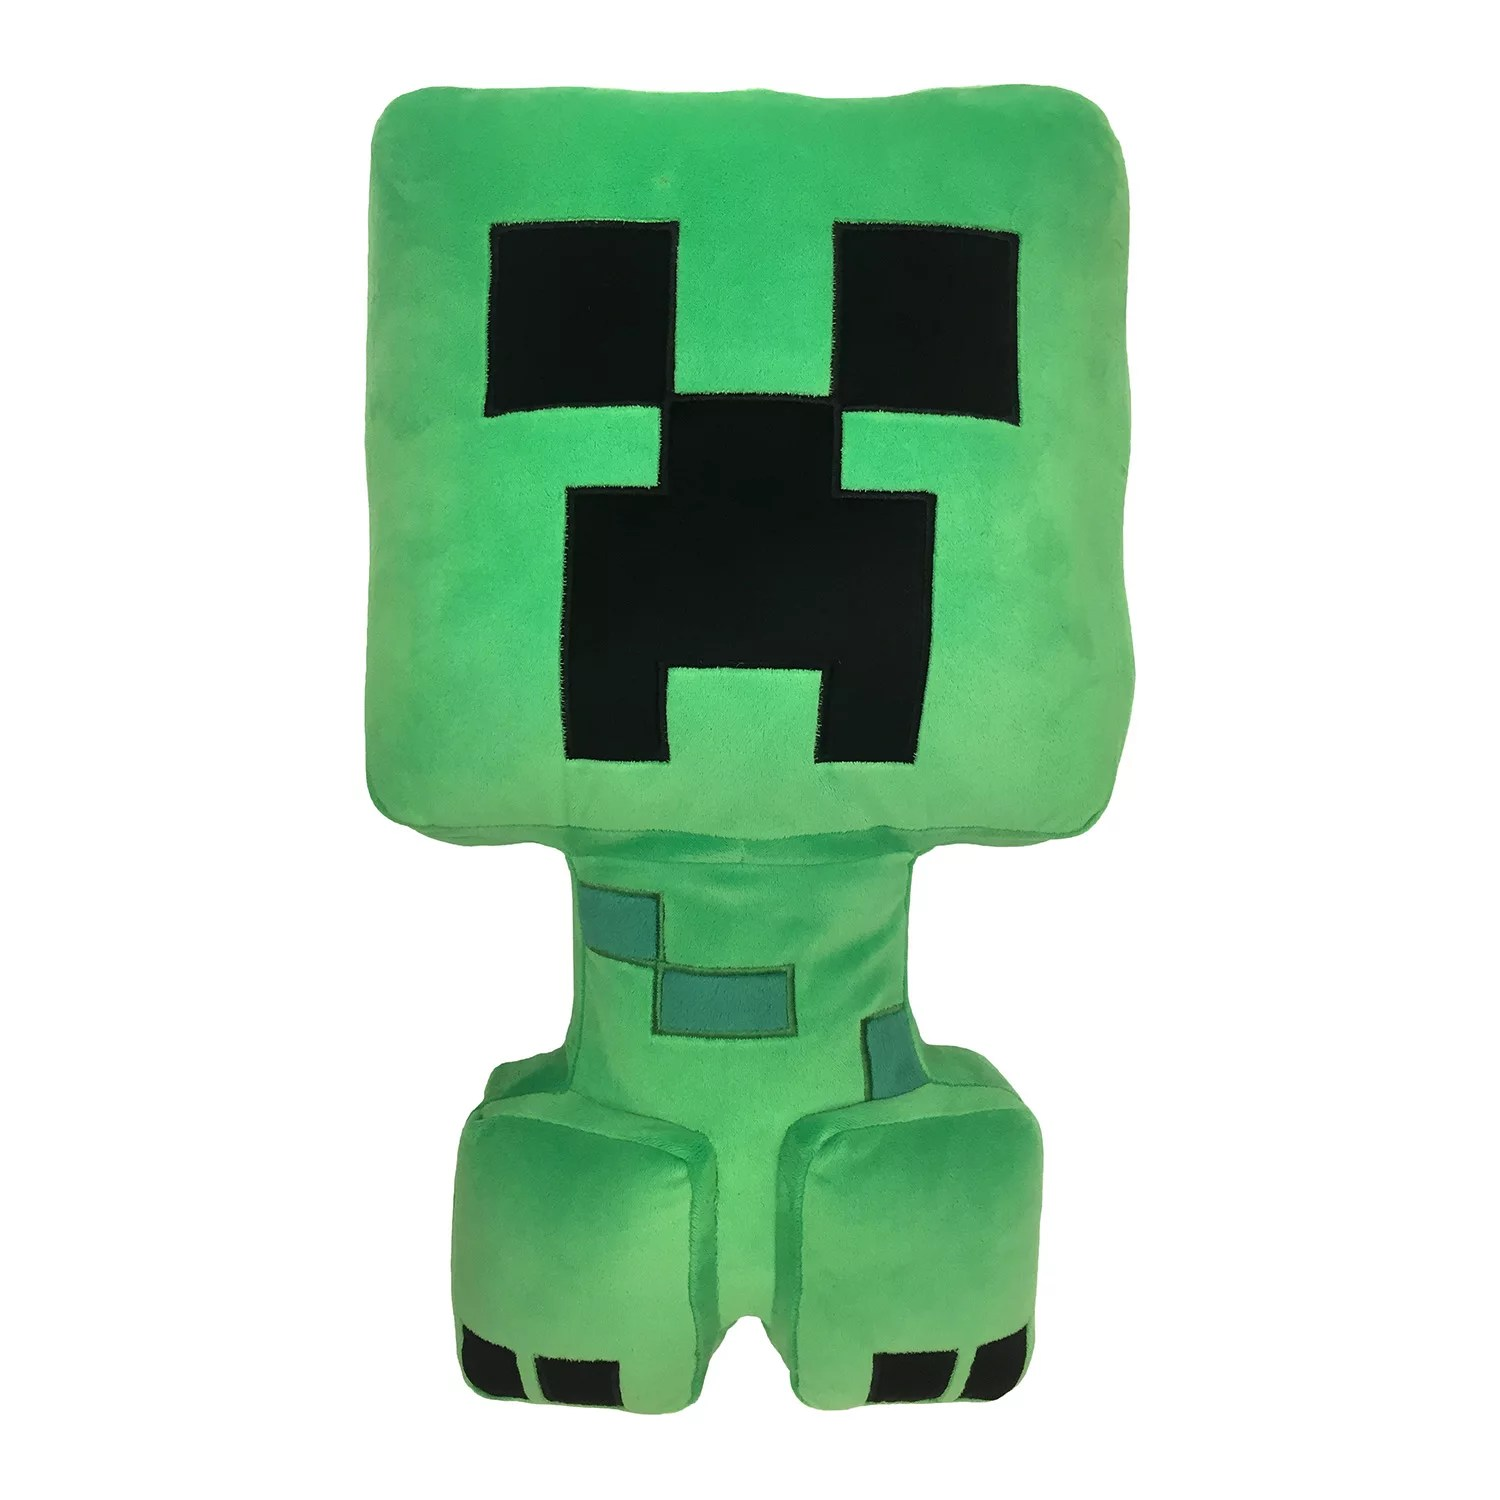 Free Wallpapers Wid Quotes Minecraft Creeper Images Wallpaper And Free Download